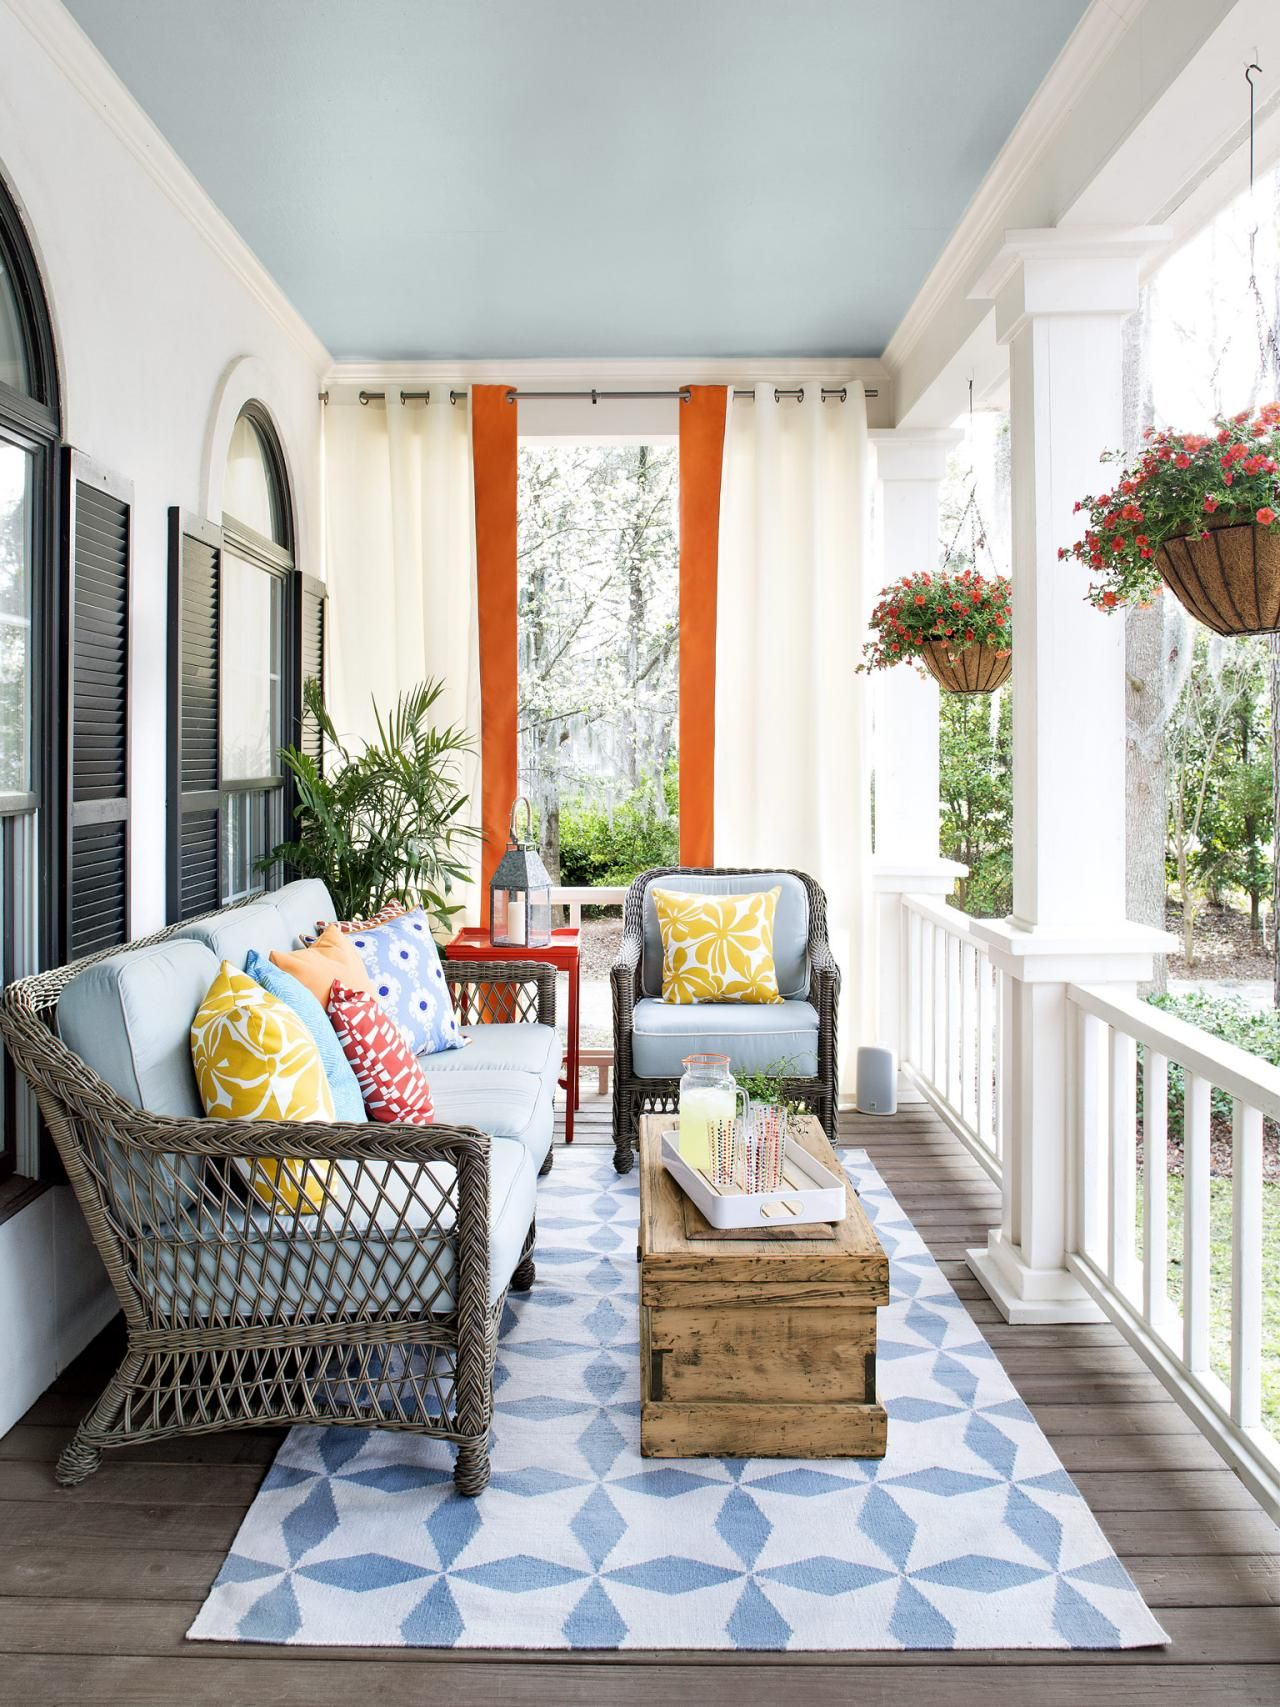 Porch Design And Decorating Ideas (With Images)   Porch regarding Outdoor Front Porch Furniture